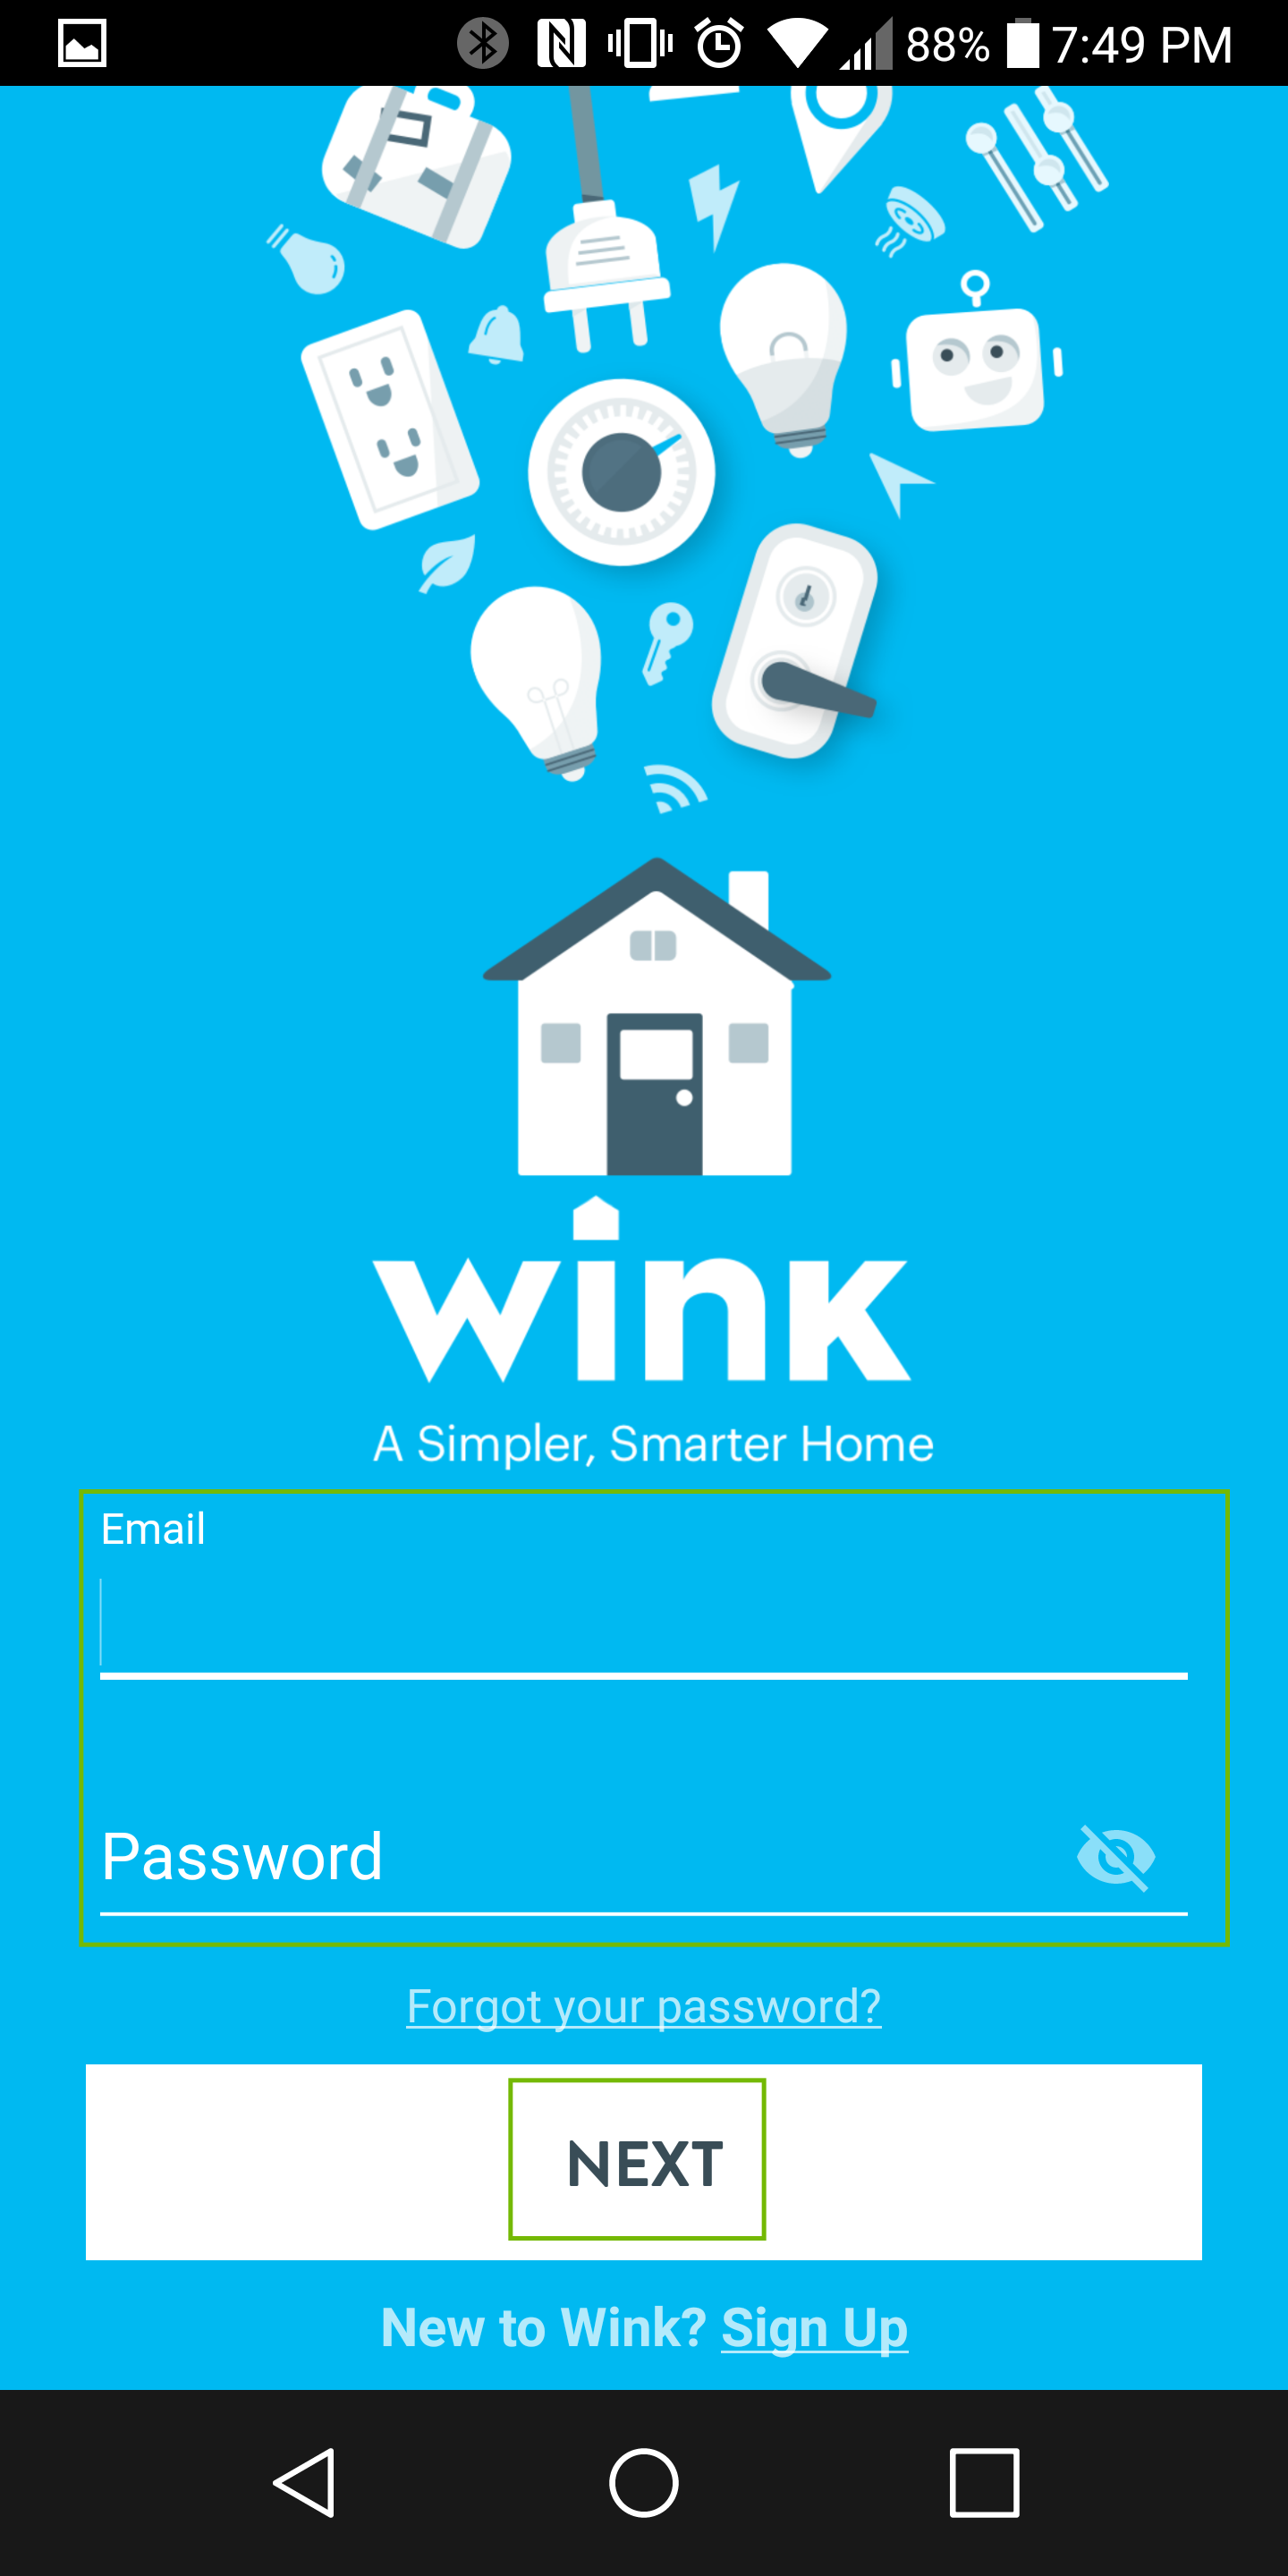 wink sign-in with e-mail and password fields highlighted